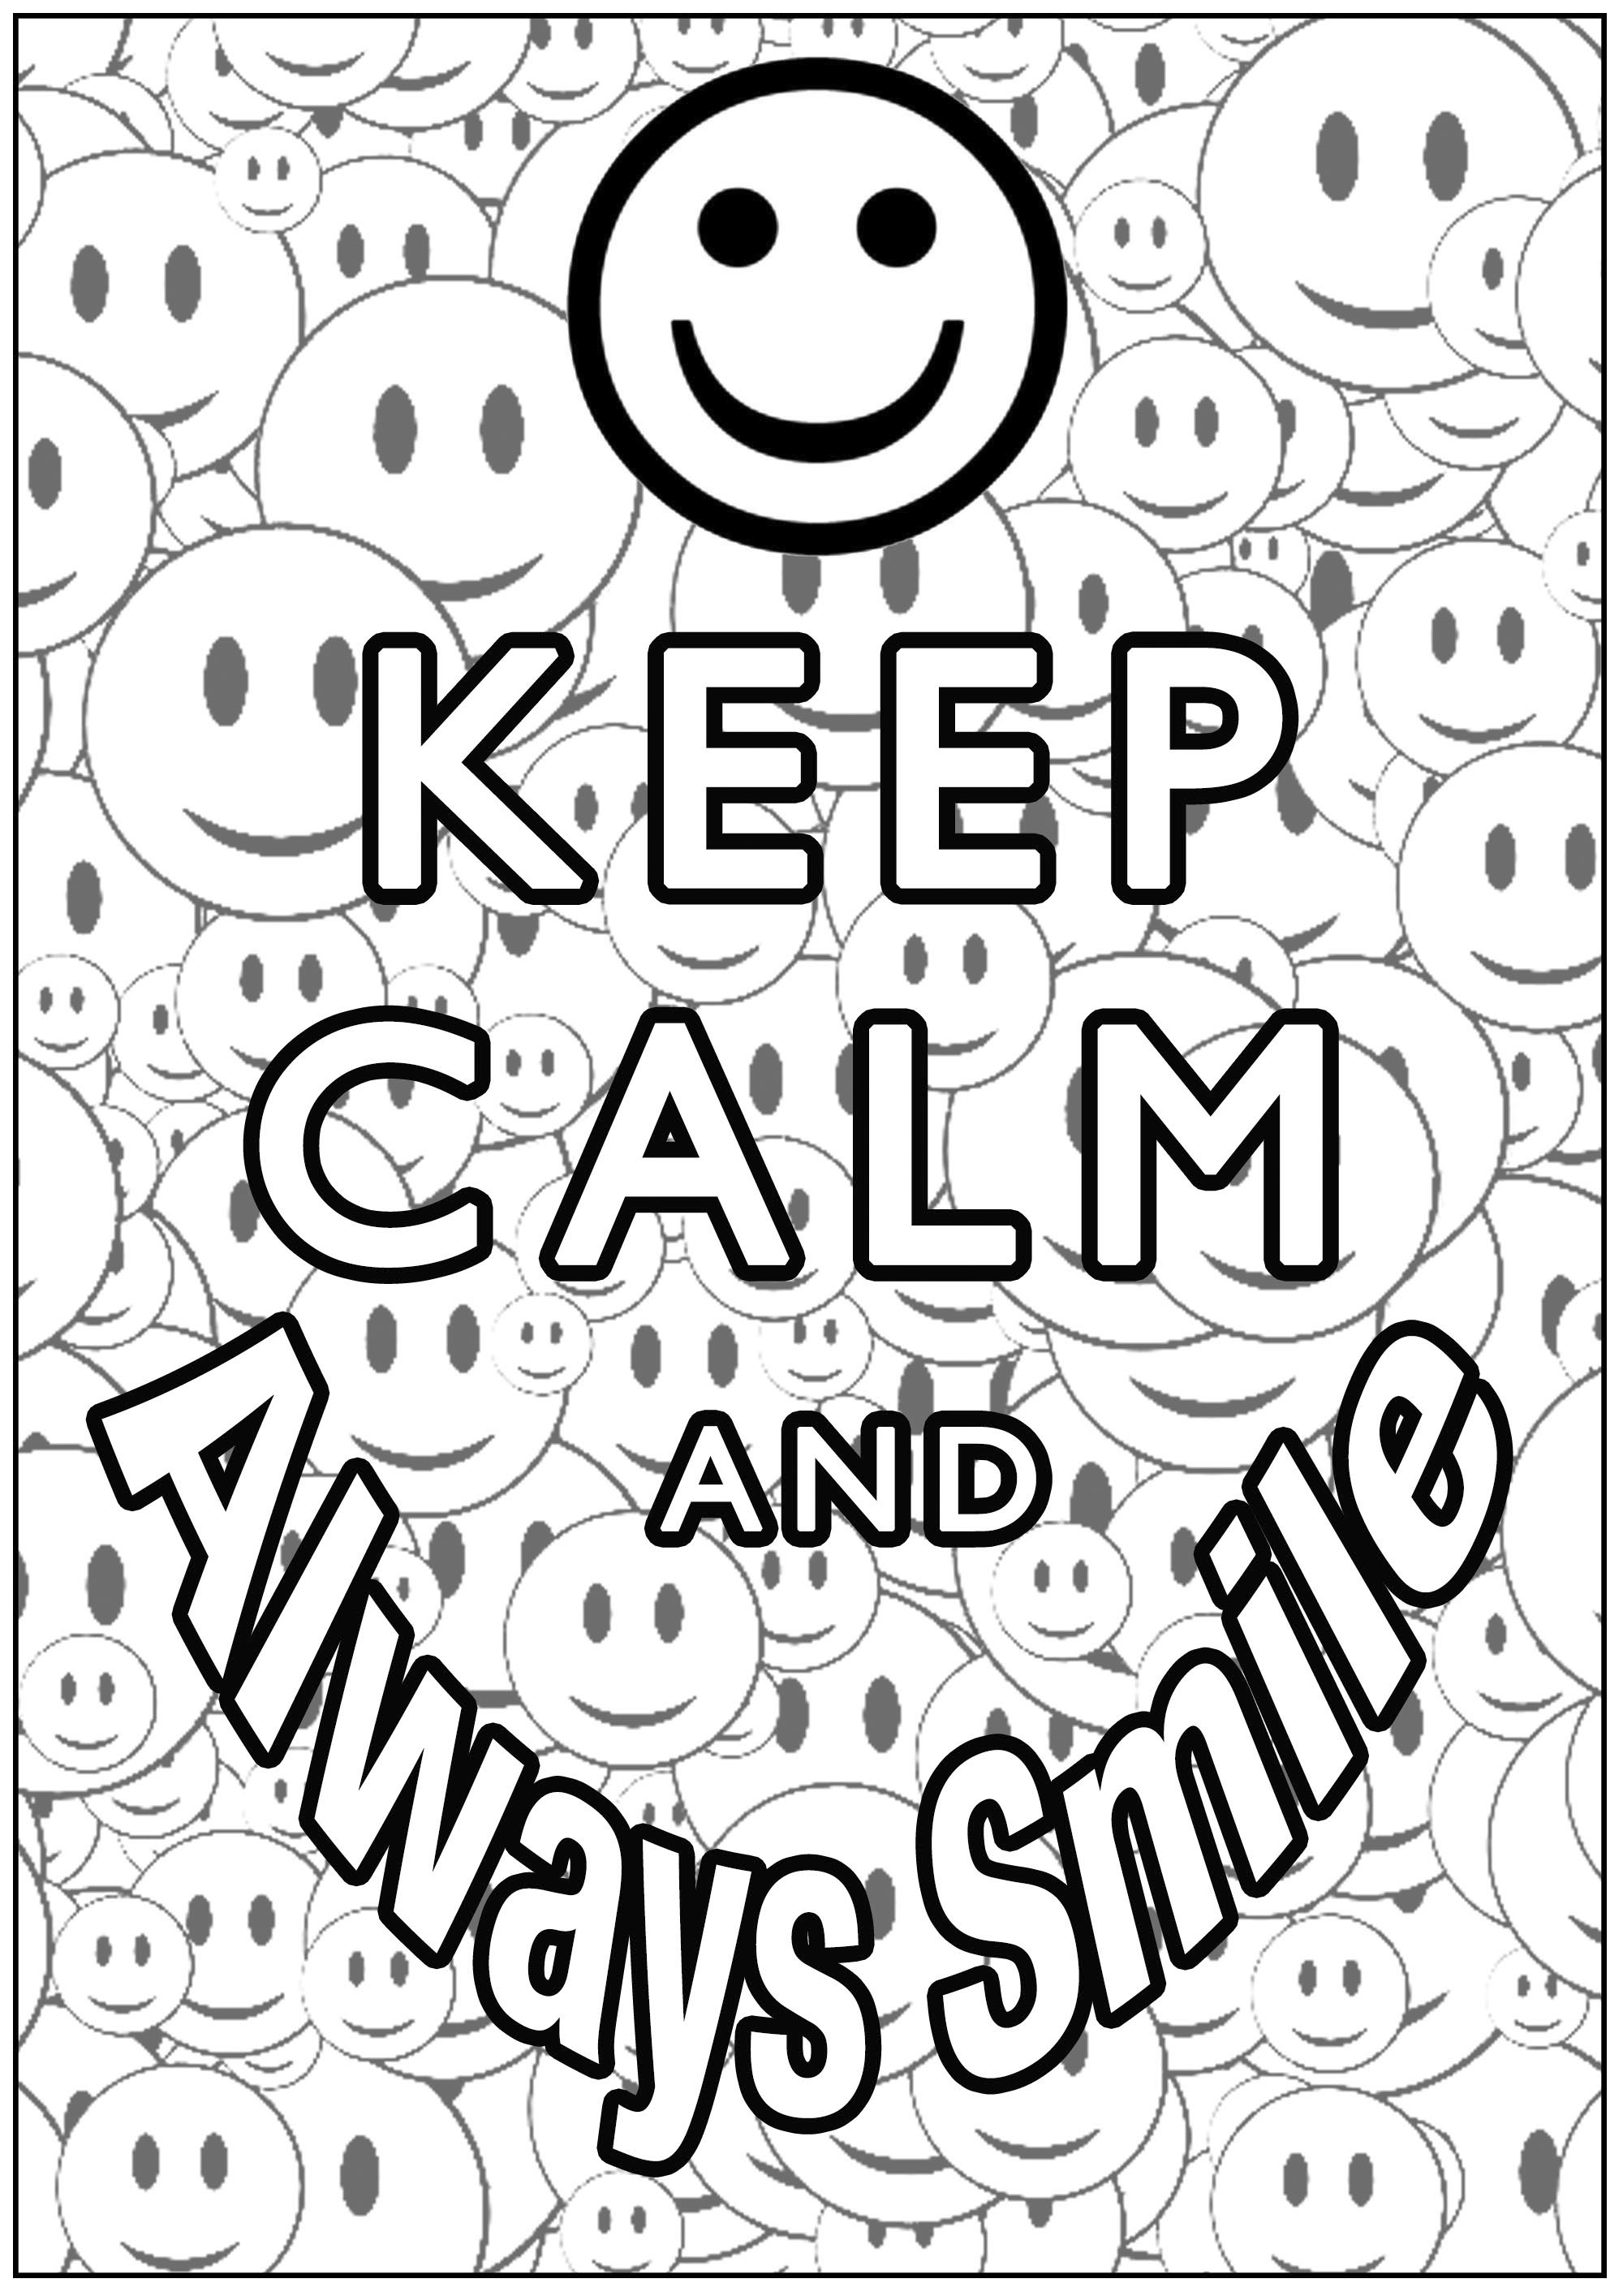 Keep Calm and Always Smile : Do you see where is the big smile in this poster ?